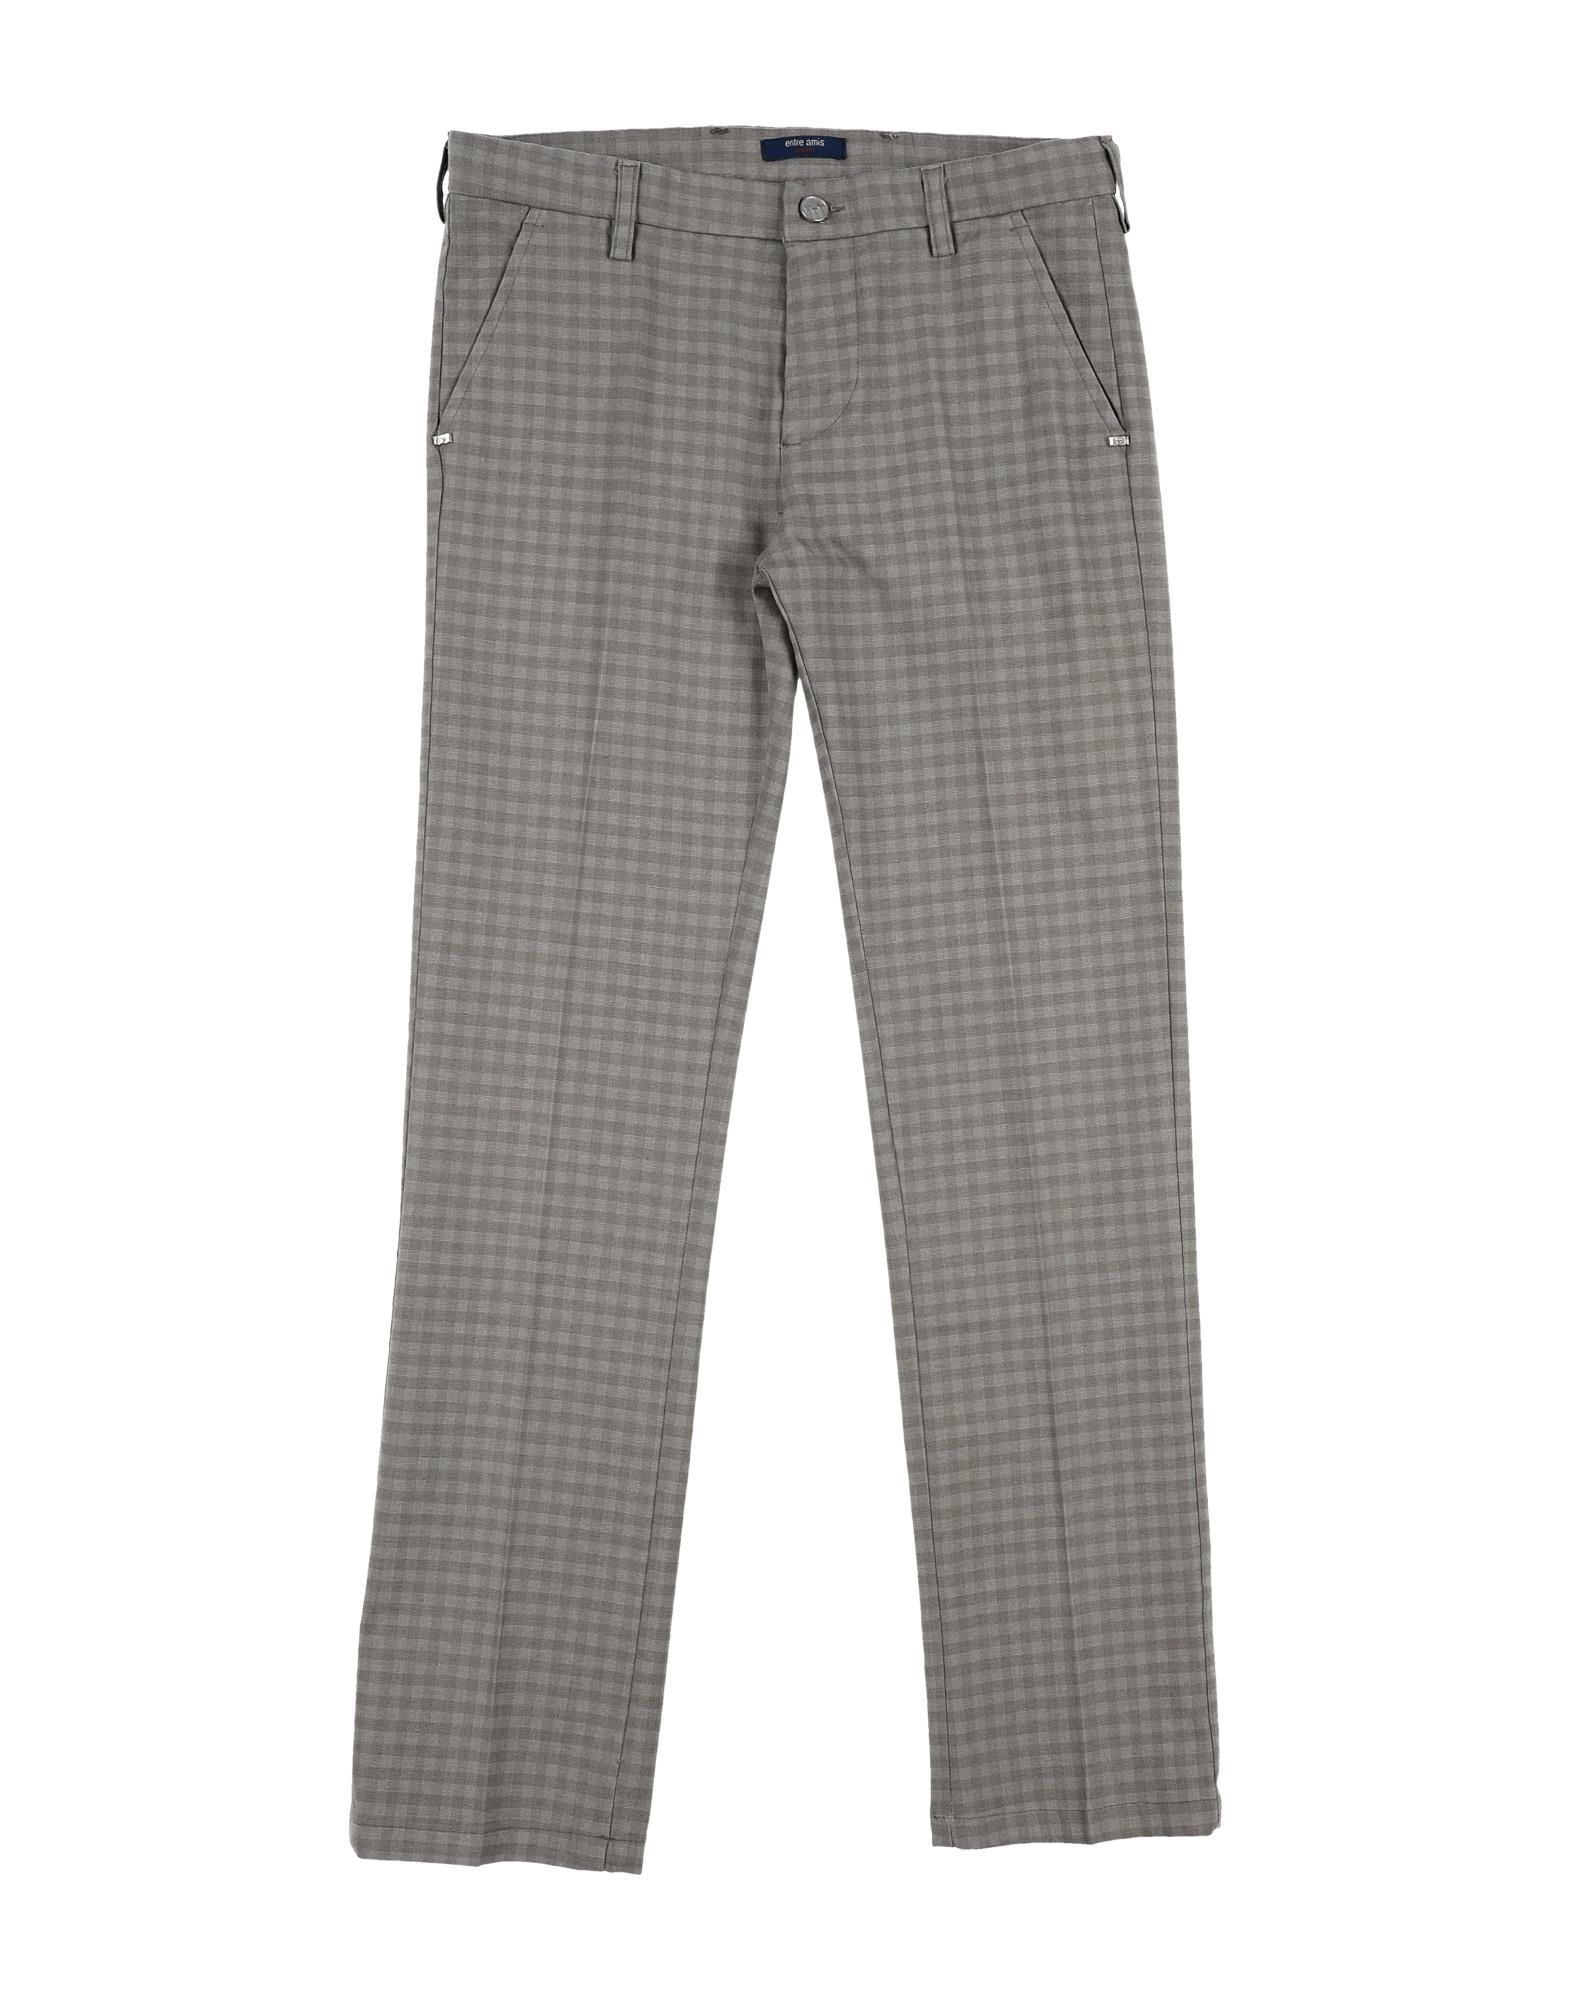 Entre Amis Garçon Kids' Casual Pants In Gray